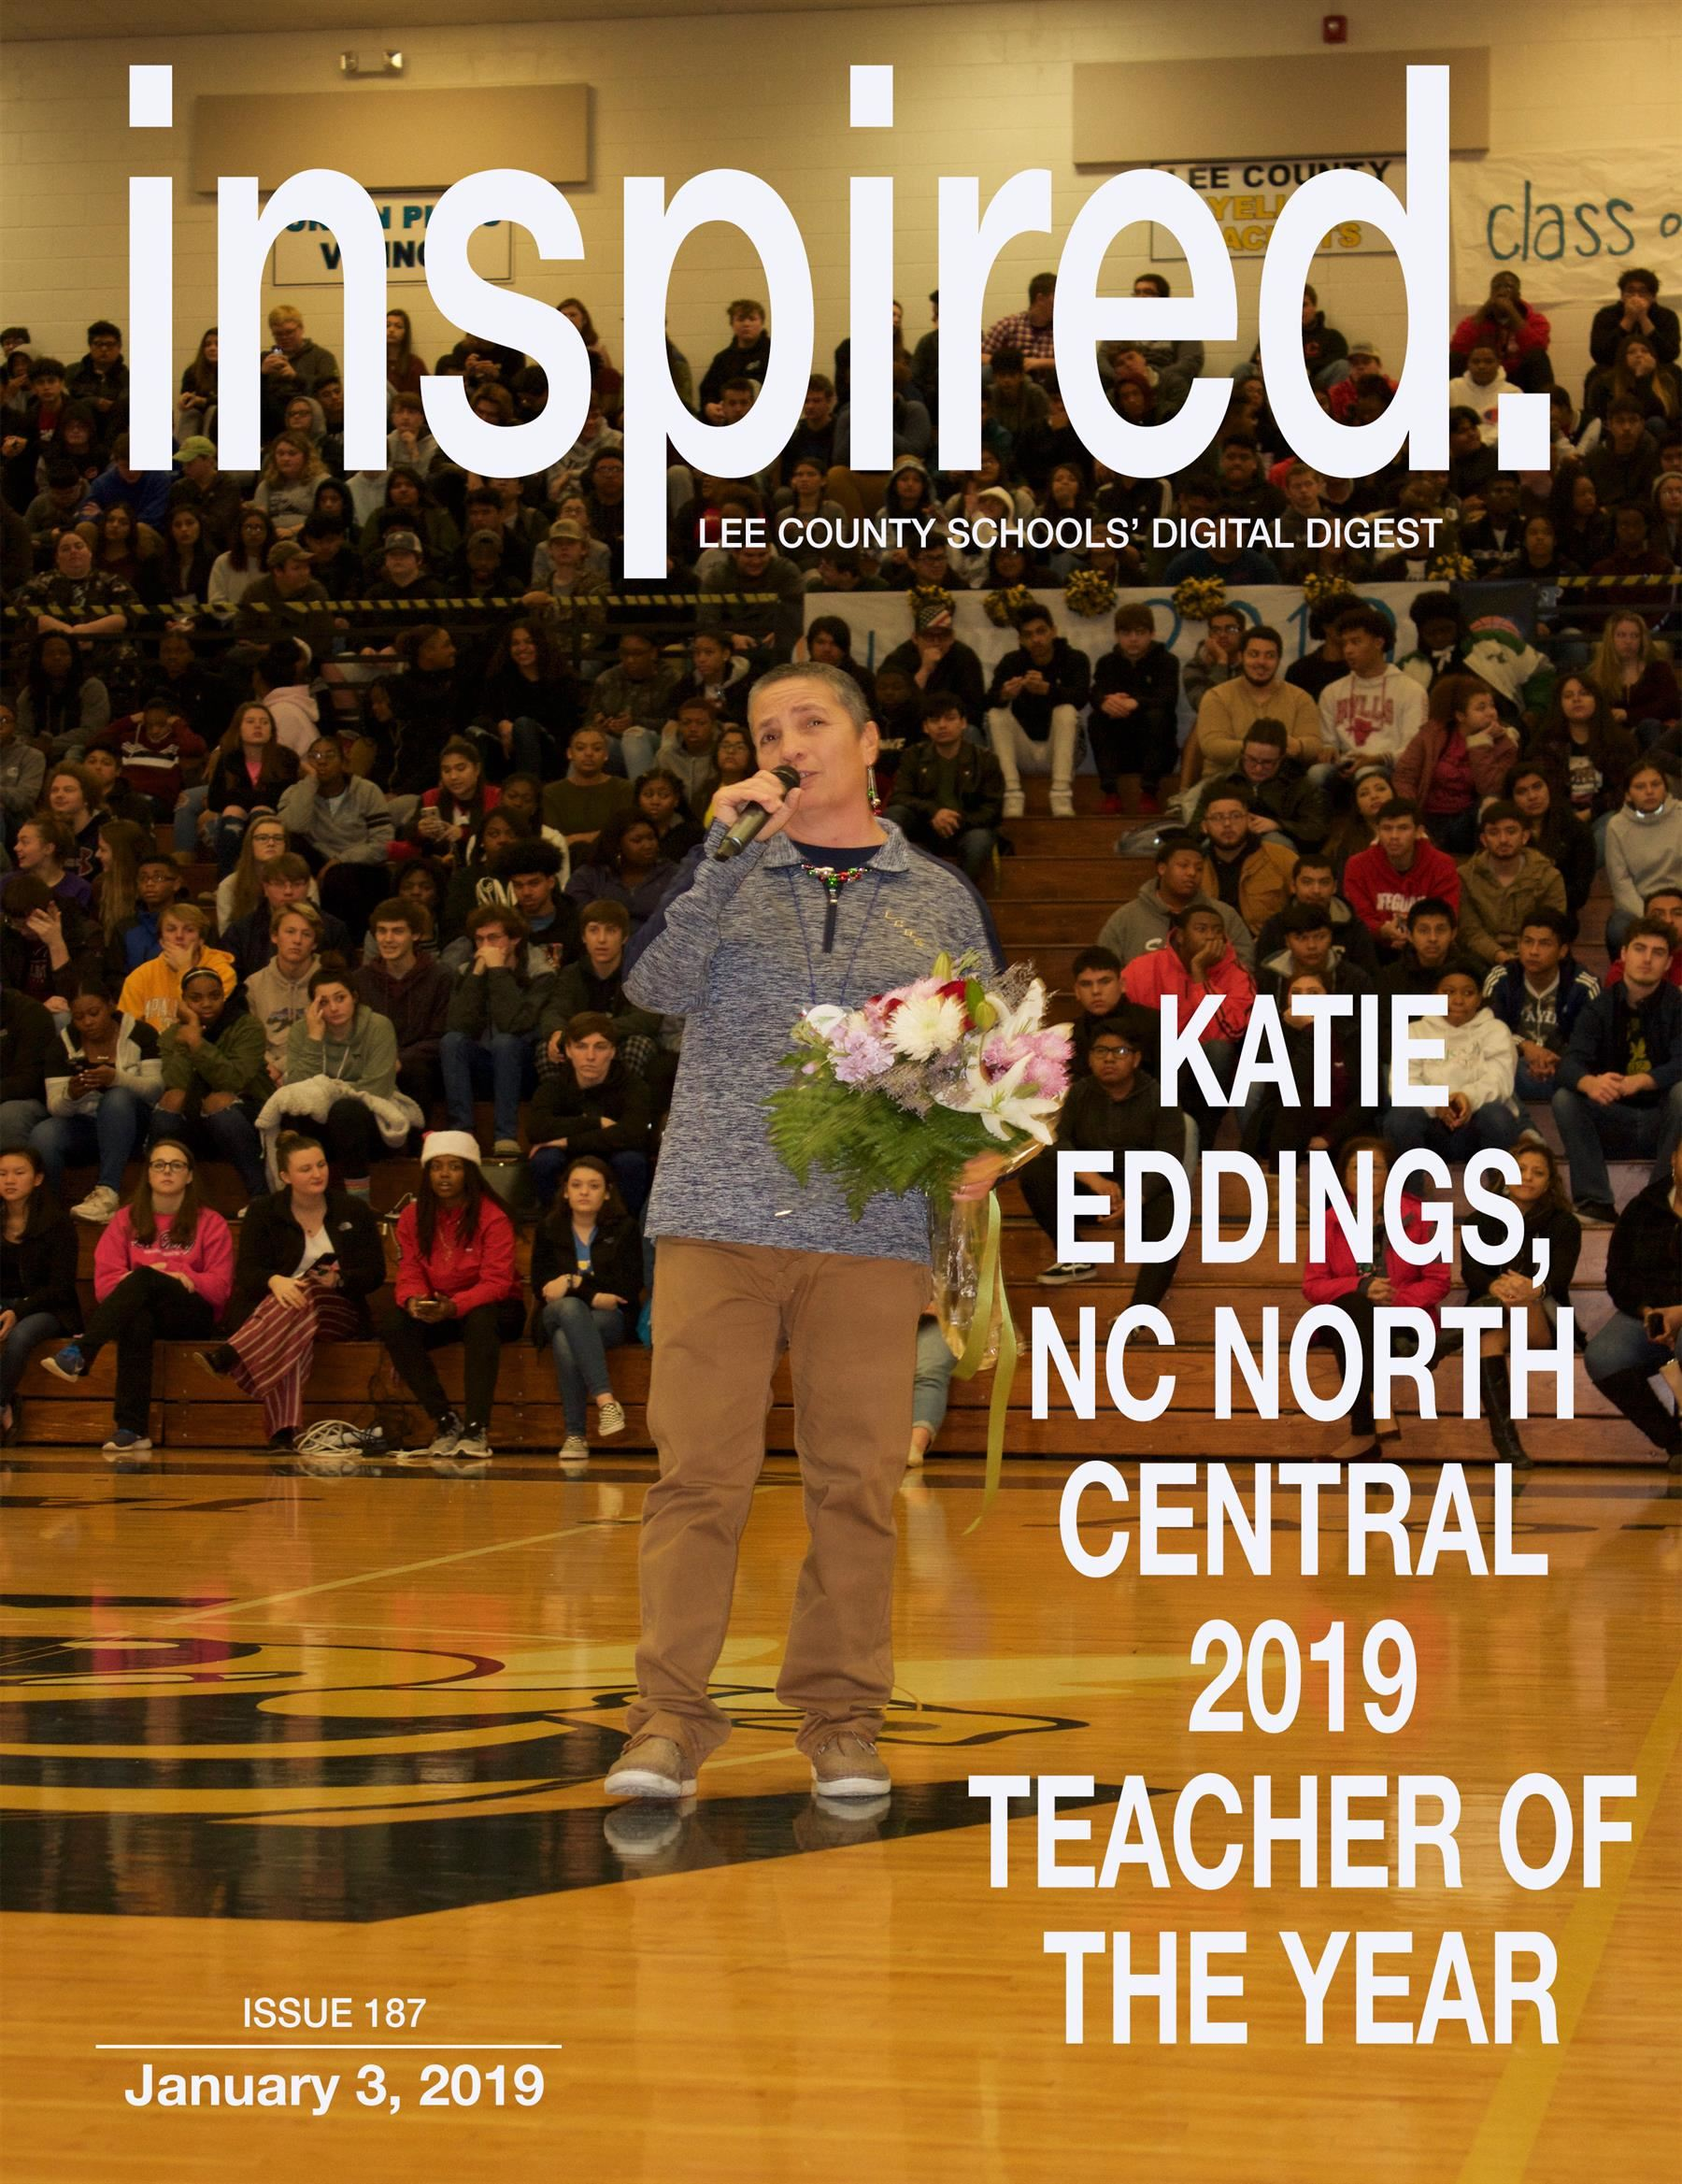 INSPIRED  Katie Eddings, NC North Central 2019 Teacher of the Year